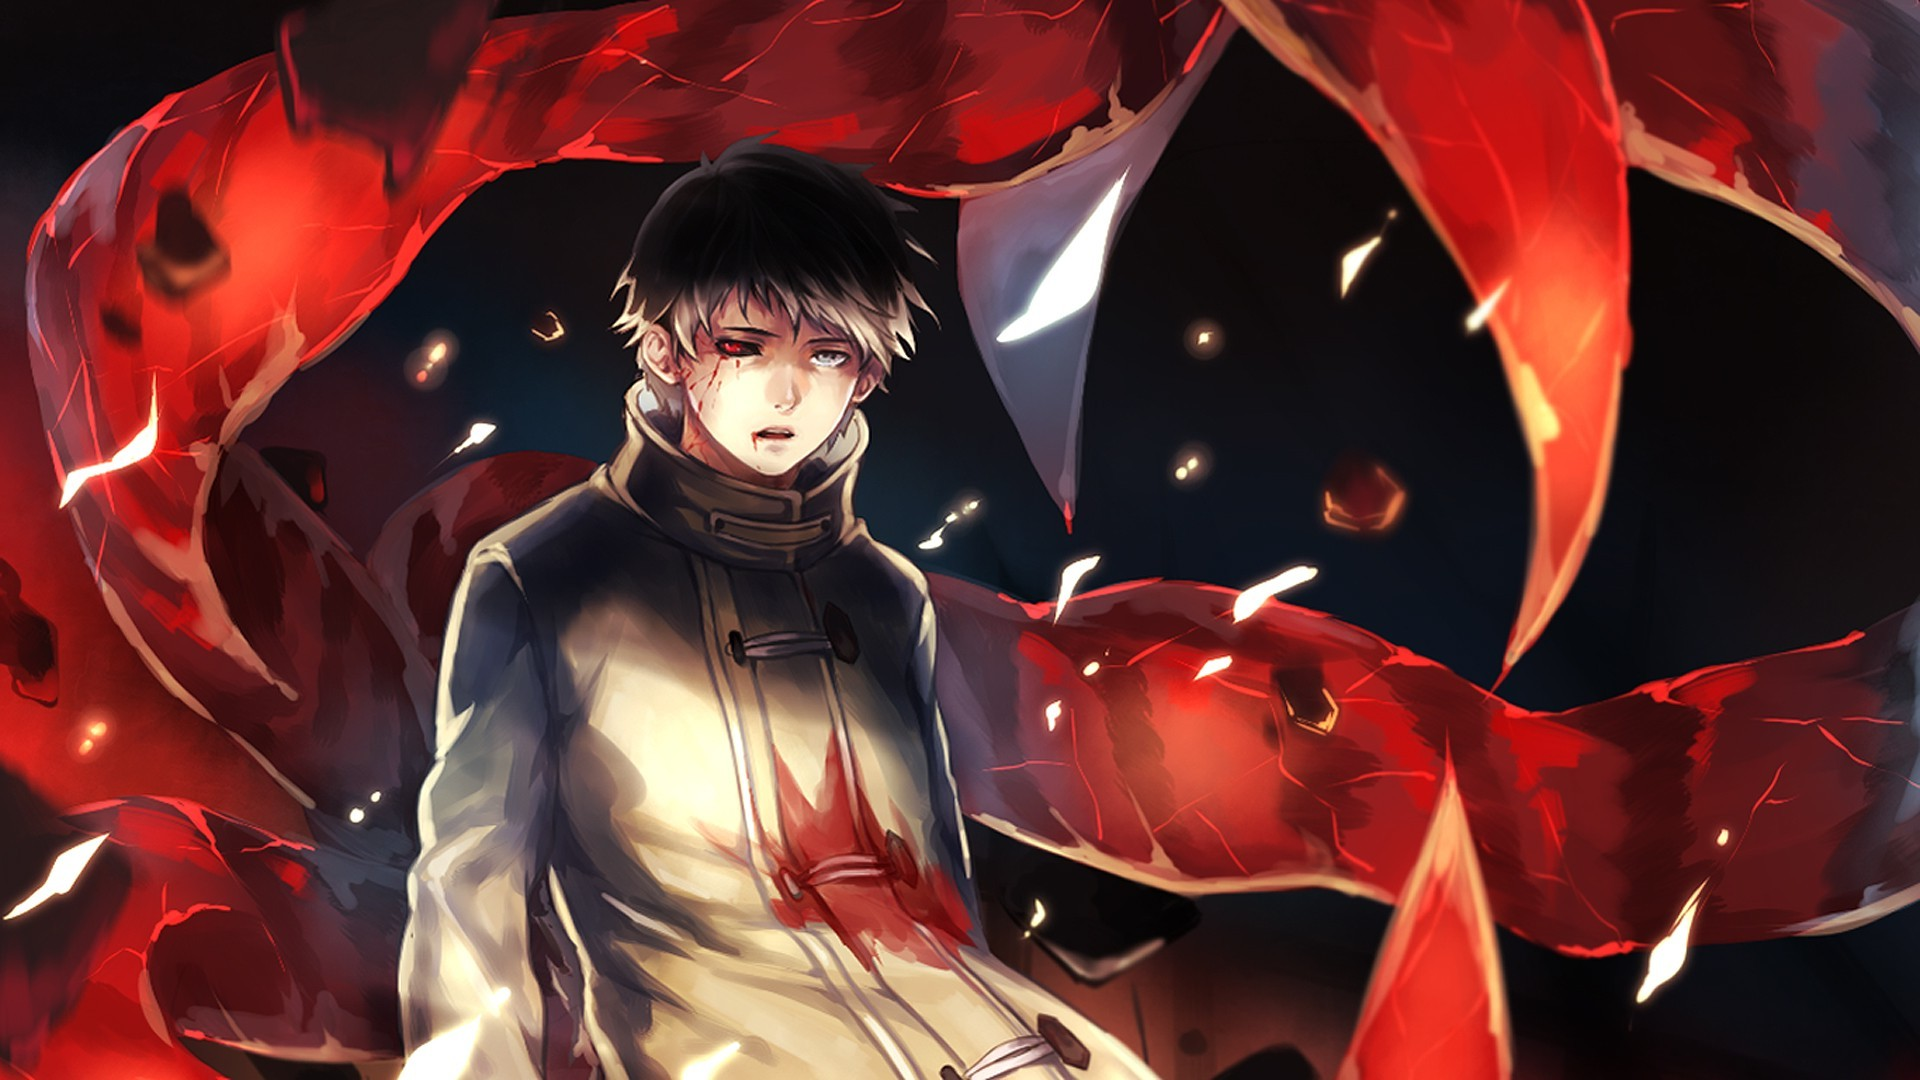 1920x1080 Tokyo Ghoul Kaneki Ken Anime Boys Wallpapers Kaneki Wallpaper Hd Desktop 1920x1080 Wallpaper Teahub Io